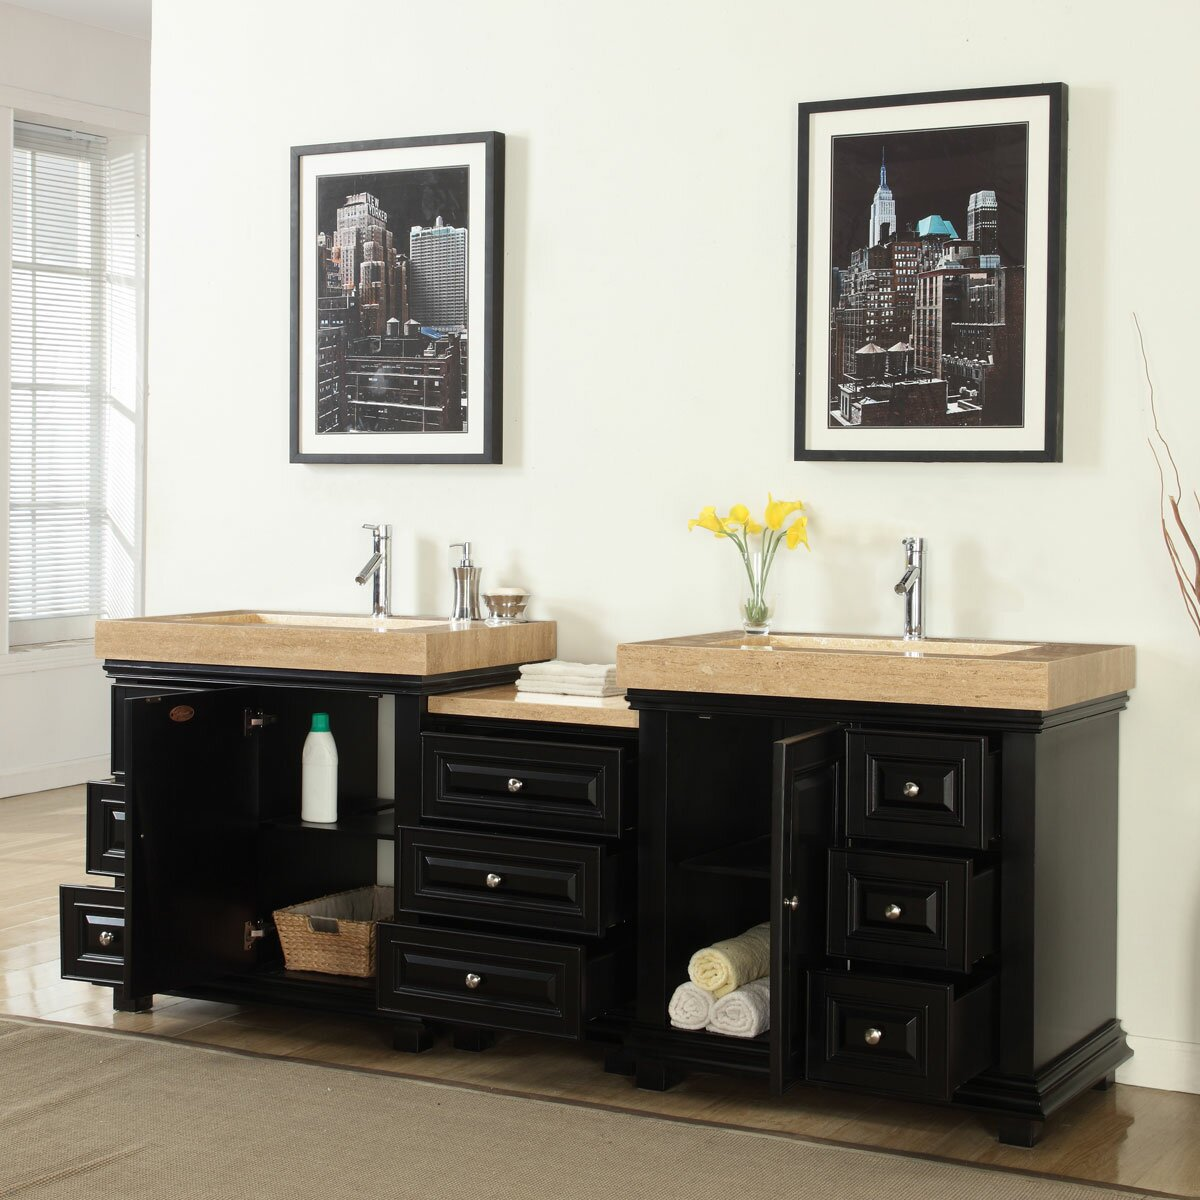 Silkroad exclusive 90 double sink modern bathroom vanity set reviews wayfair - Kona modern bathroom vanity set ...